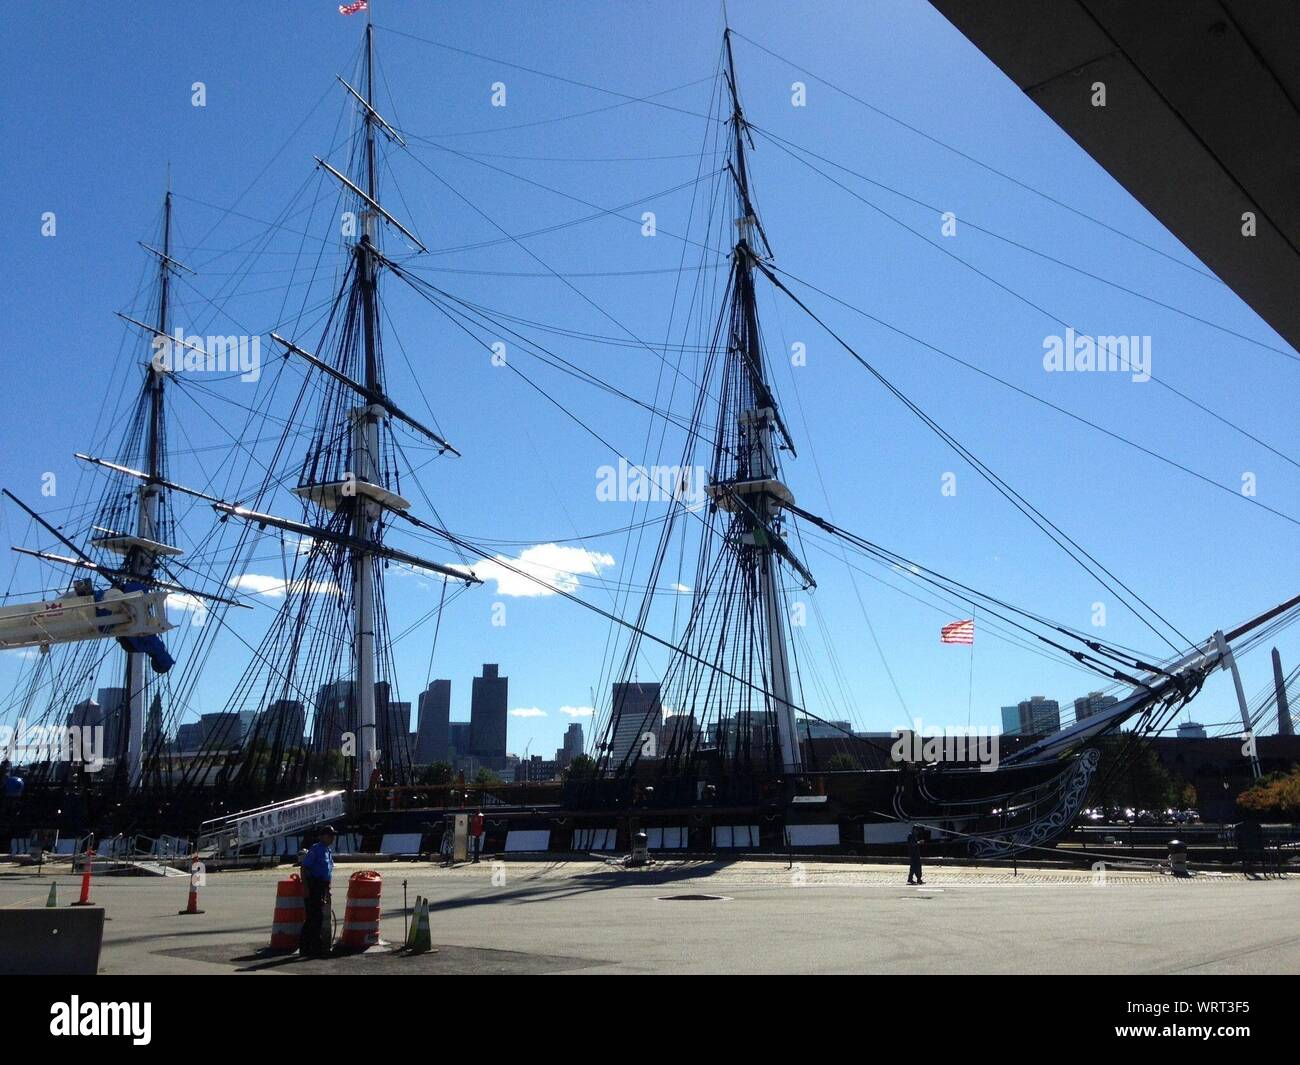 Uss Constitution Moored At Charlestown Navy Yard Against Blue Sky Stock Photo